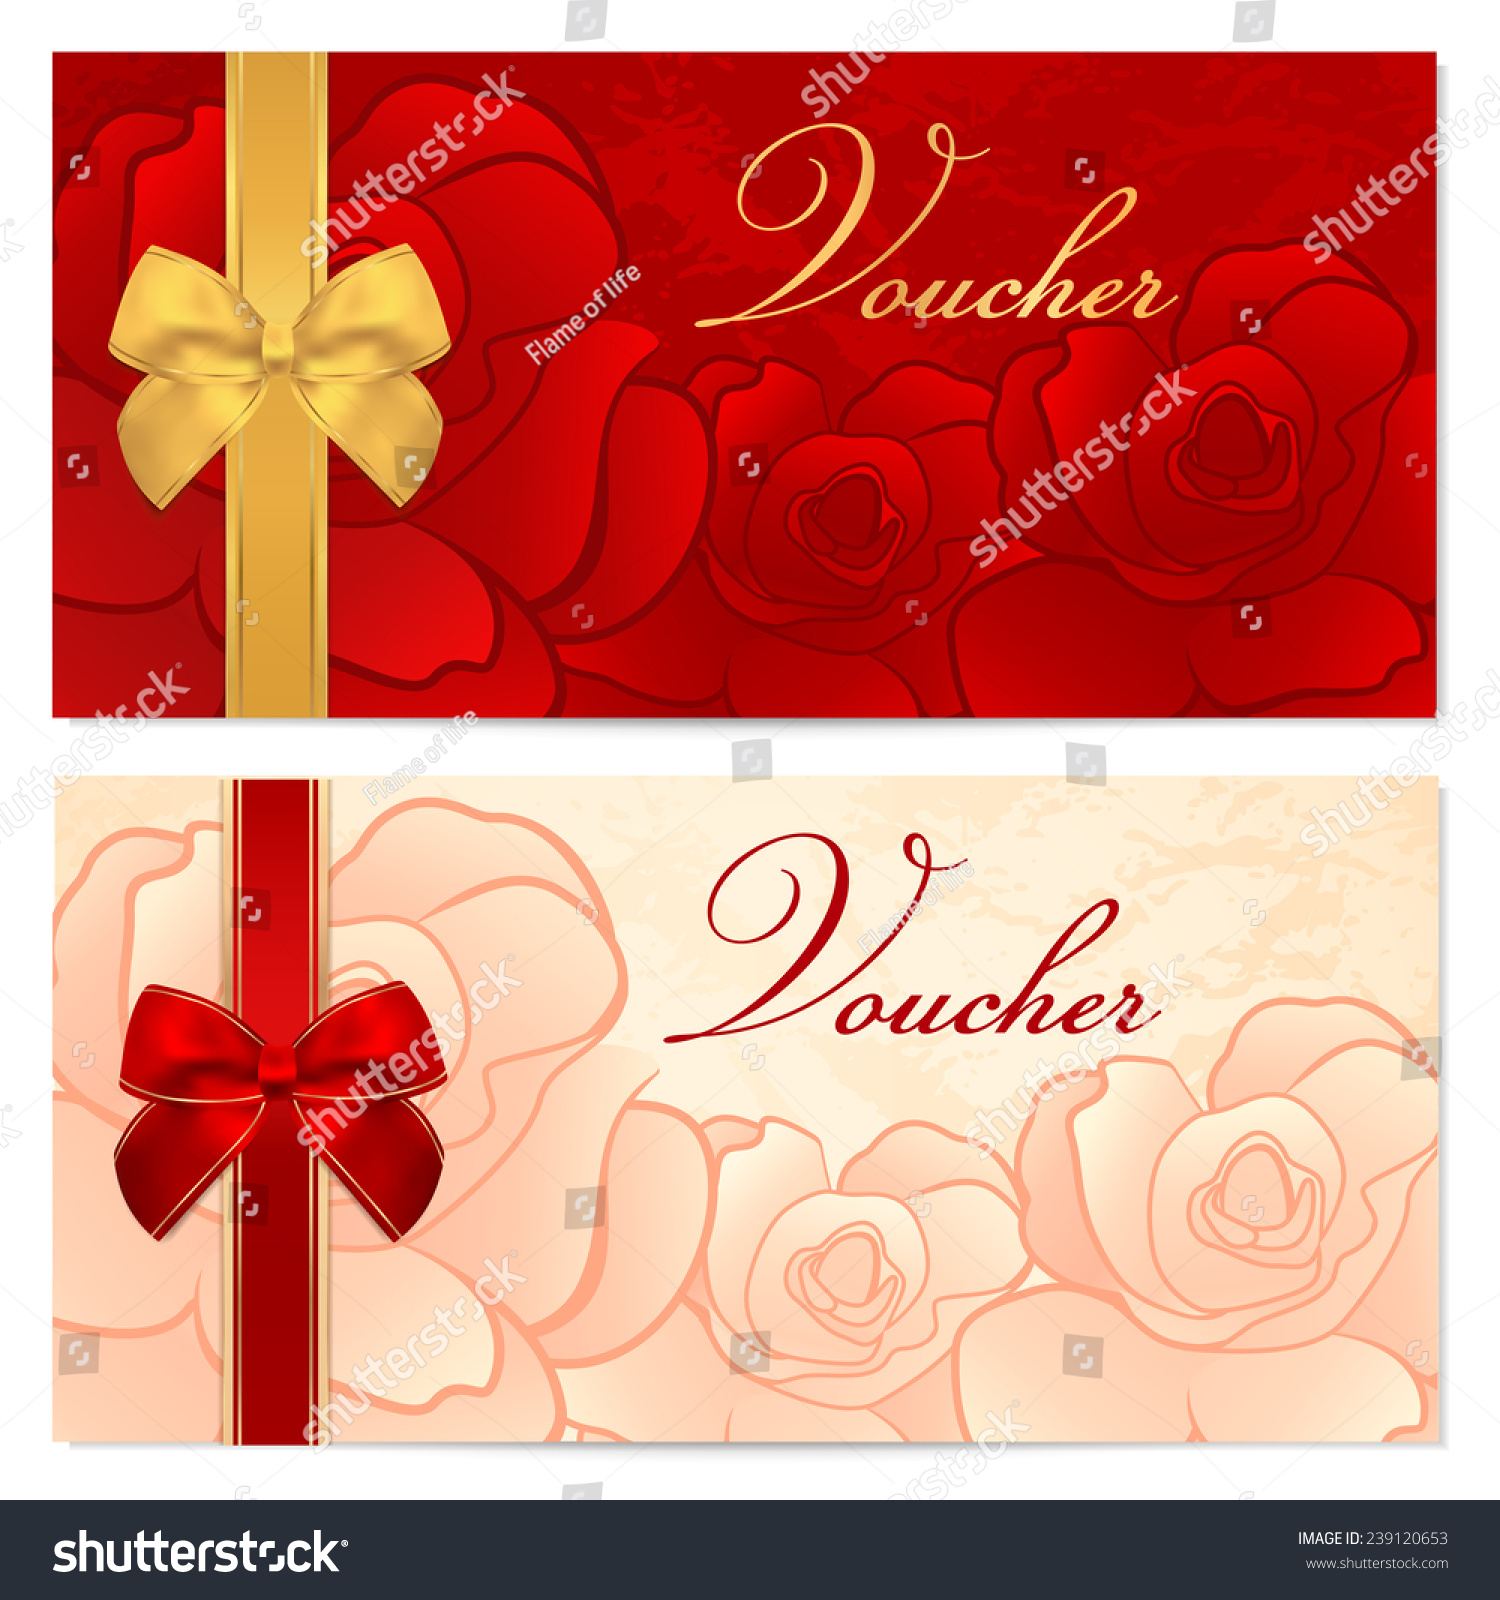 Voucher Gift Certificate Coupon Template Floral Stock Illustration ...